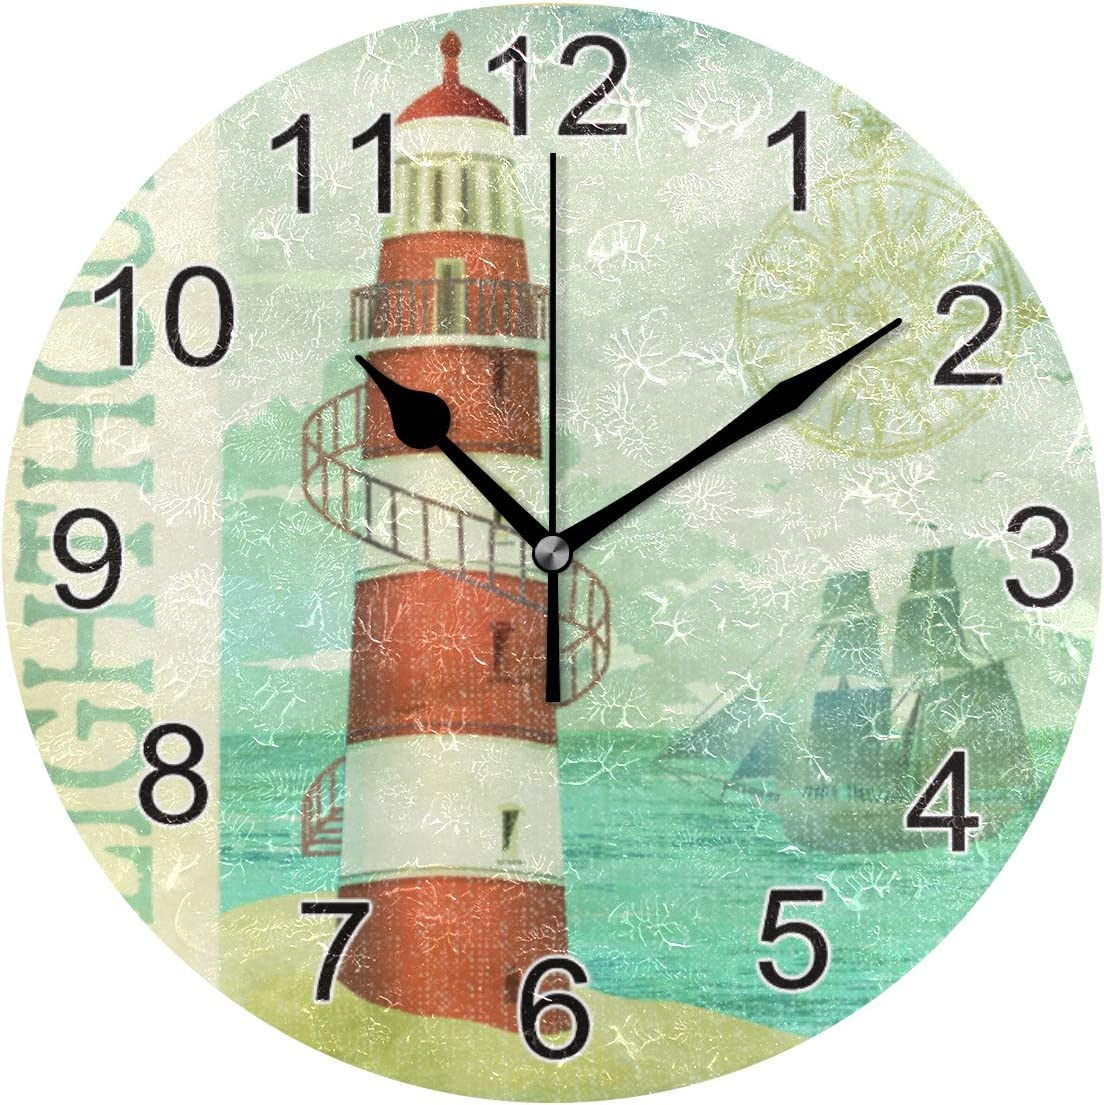 None Brand FFYHO Vintage Lighthouse Poster Wall Clock 9.5In Summer Seaside Island Coast Decor Silent Clocks for Home Office School Clock